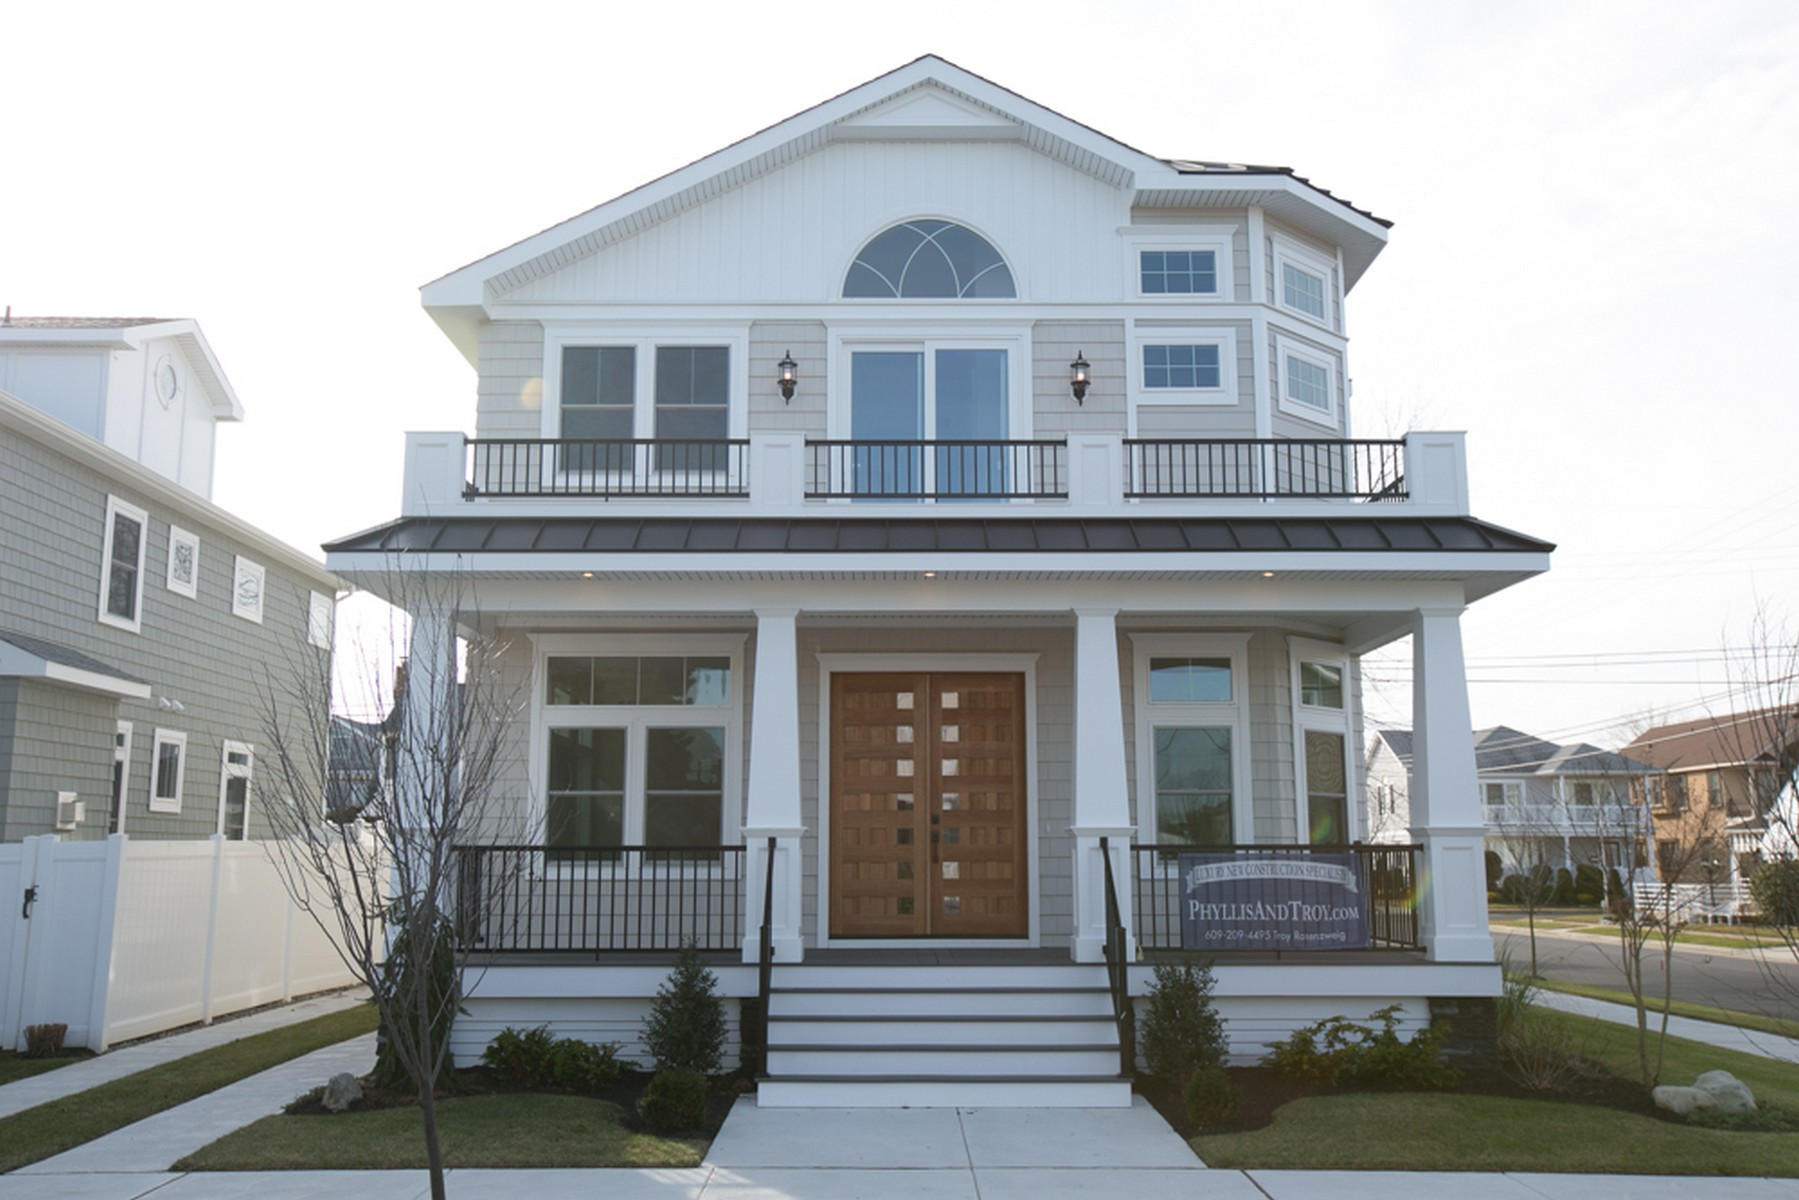 Single Family Home for Sale at 16 N Sumner Ave Margate, New Jersey, 08402 United States